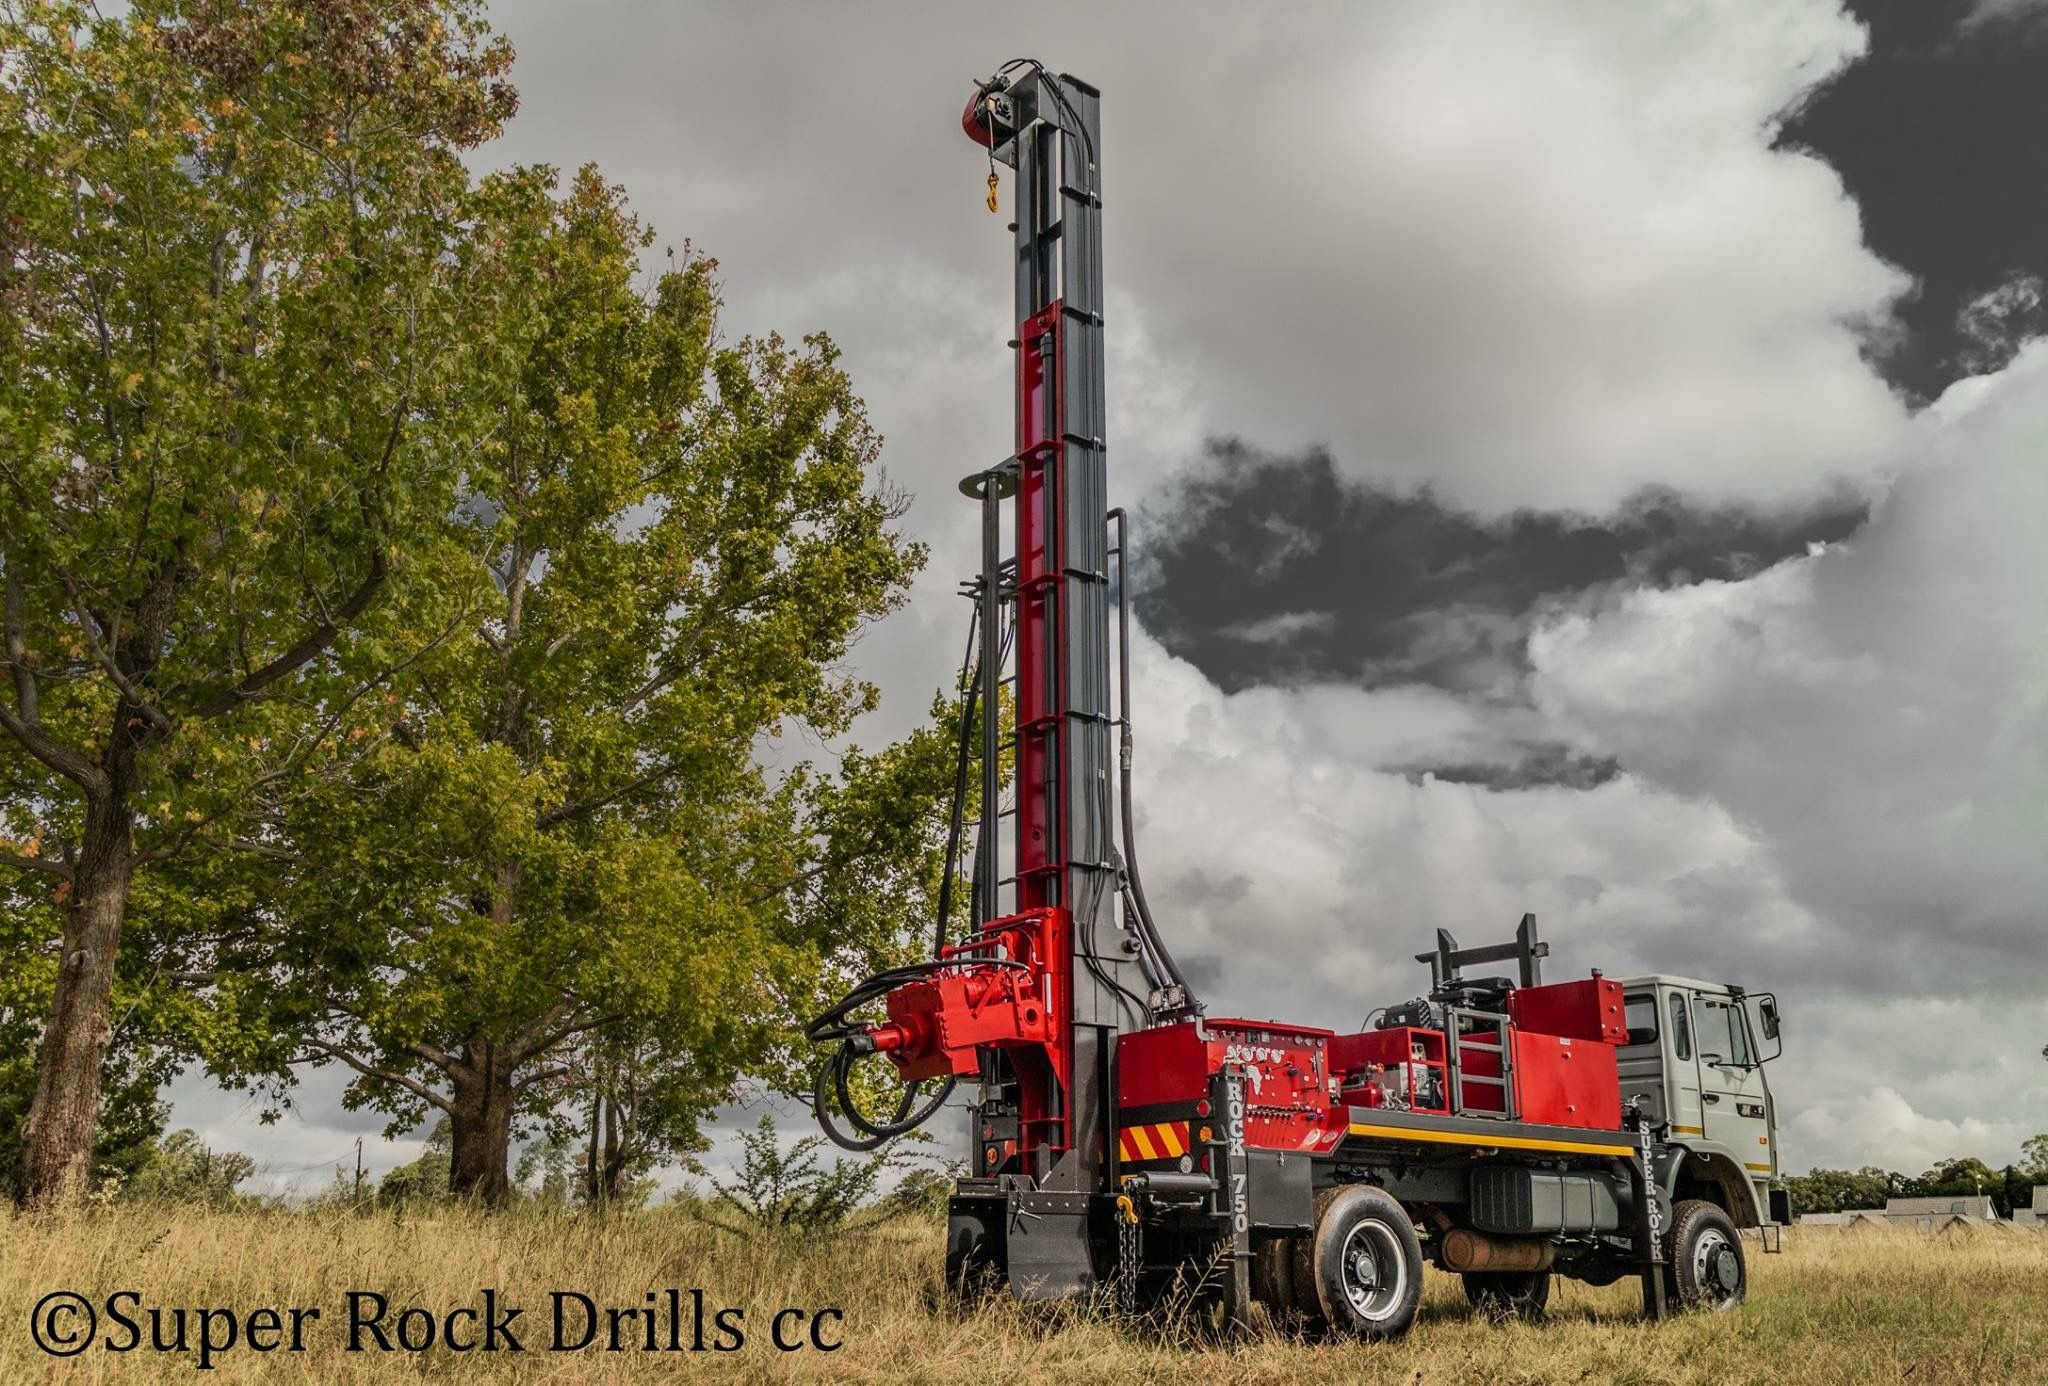 A Super Rock 750 water well drill rig manufactured by